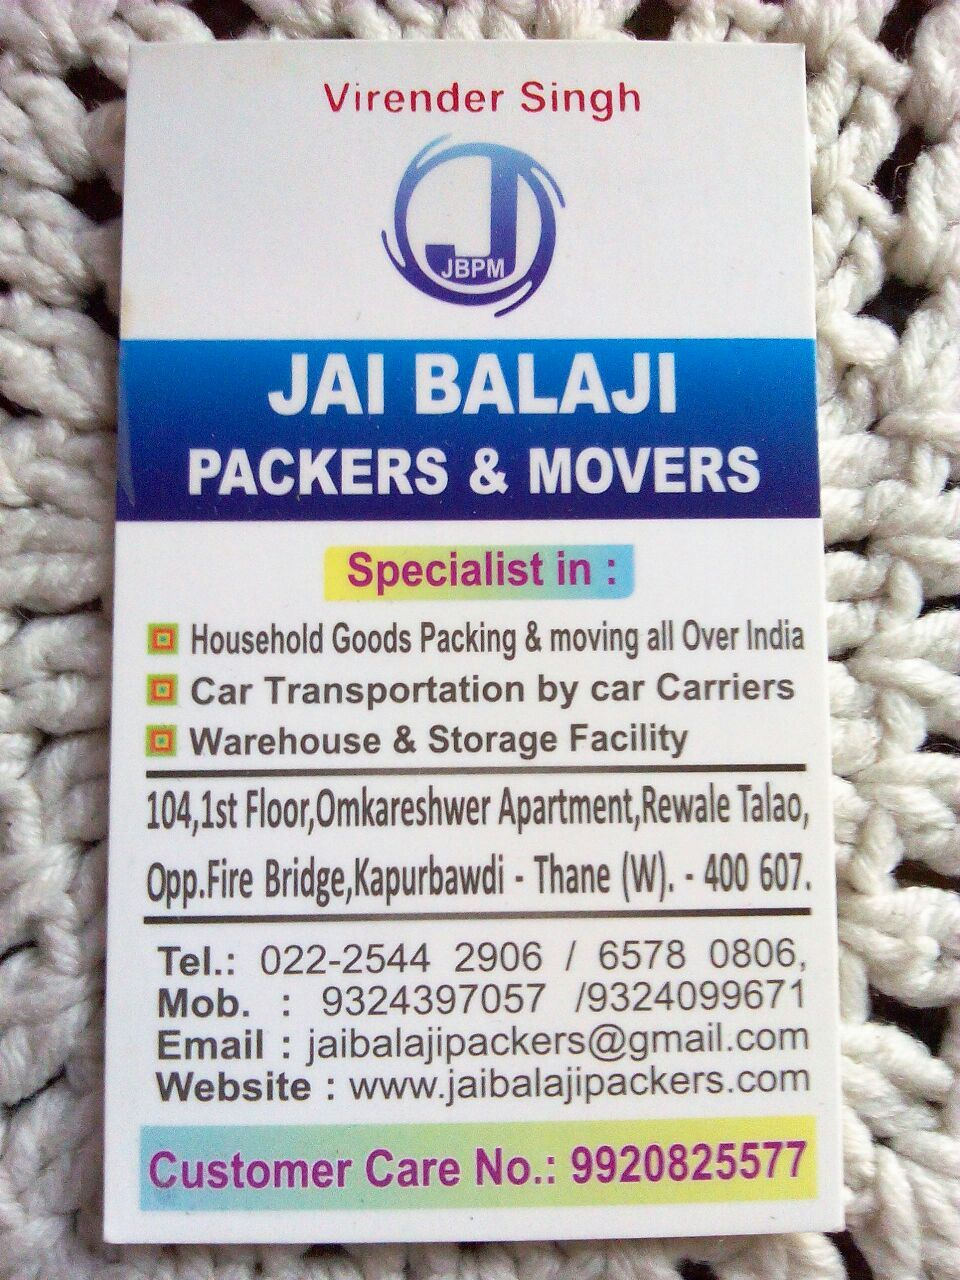 Jai balaji packers and movers in thane visiting card. for house hold ...